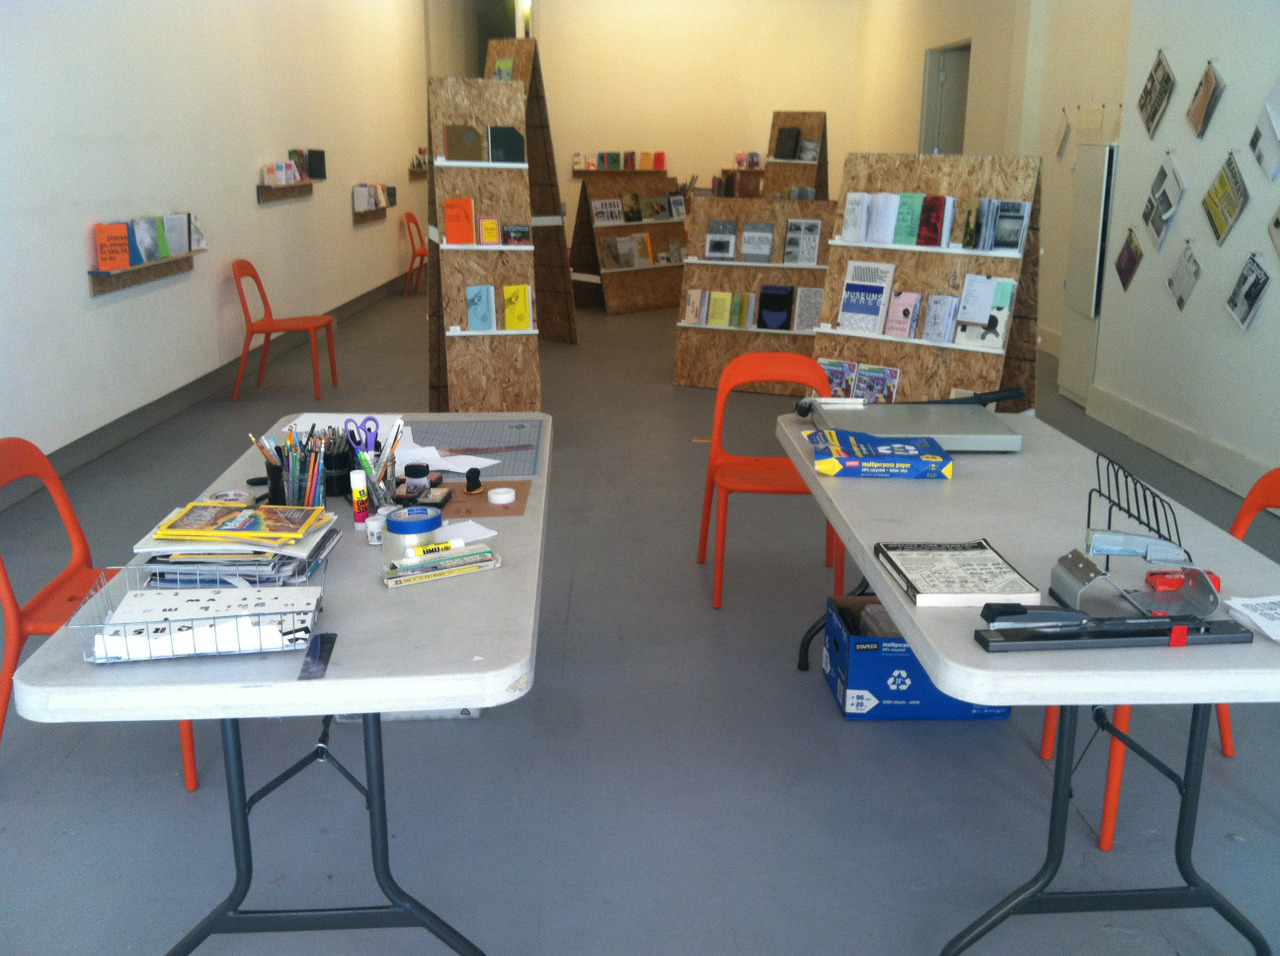 Zine Workshop starting at noon! If you are in or near Portland, ME, come on by.